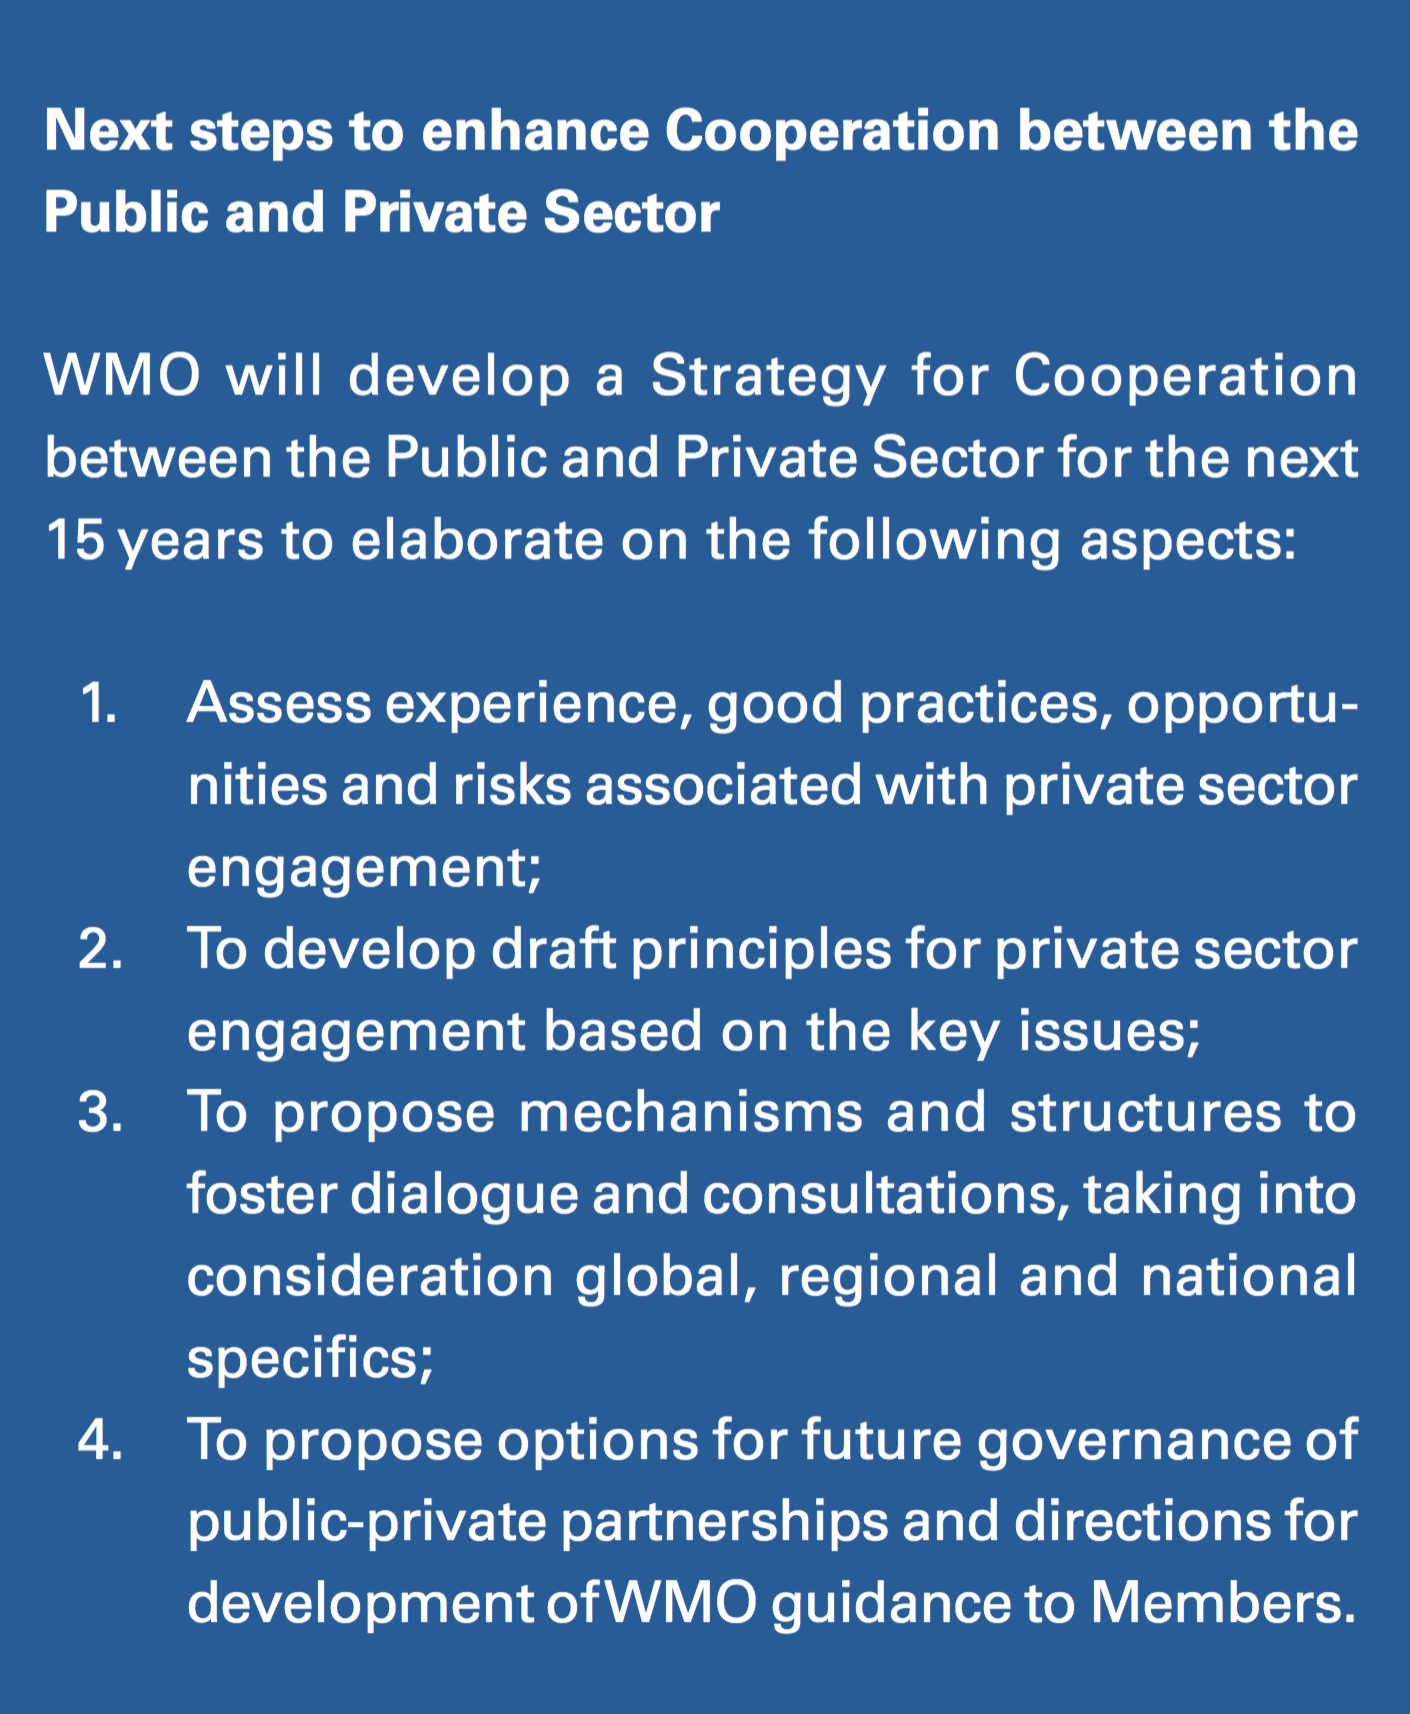 Next Steps to Enhance Public and Private Sector Cooperation